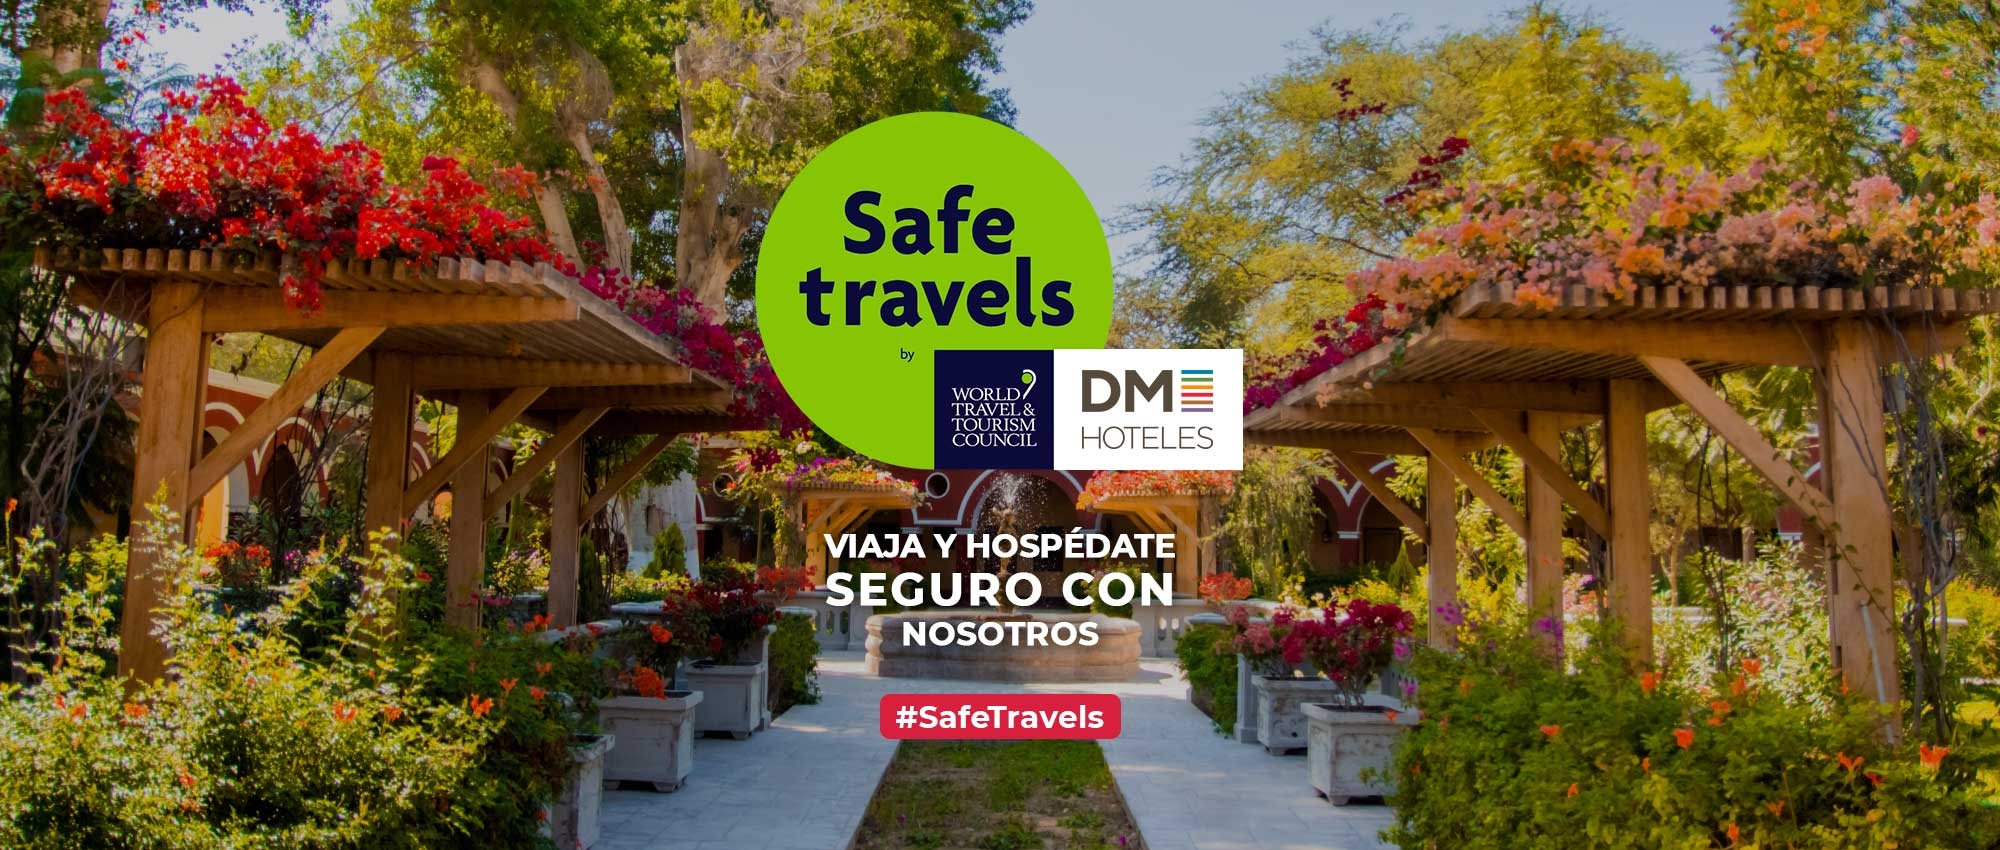 dm-hoteles-banner-safe-travels-web